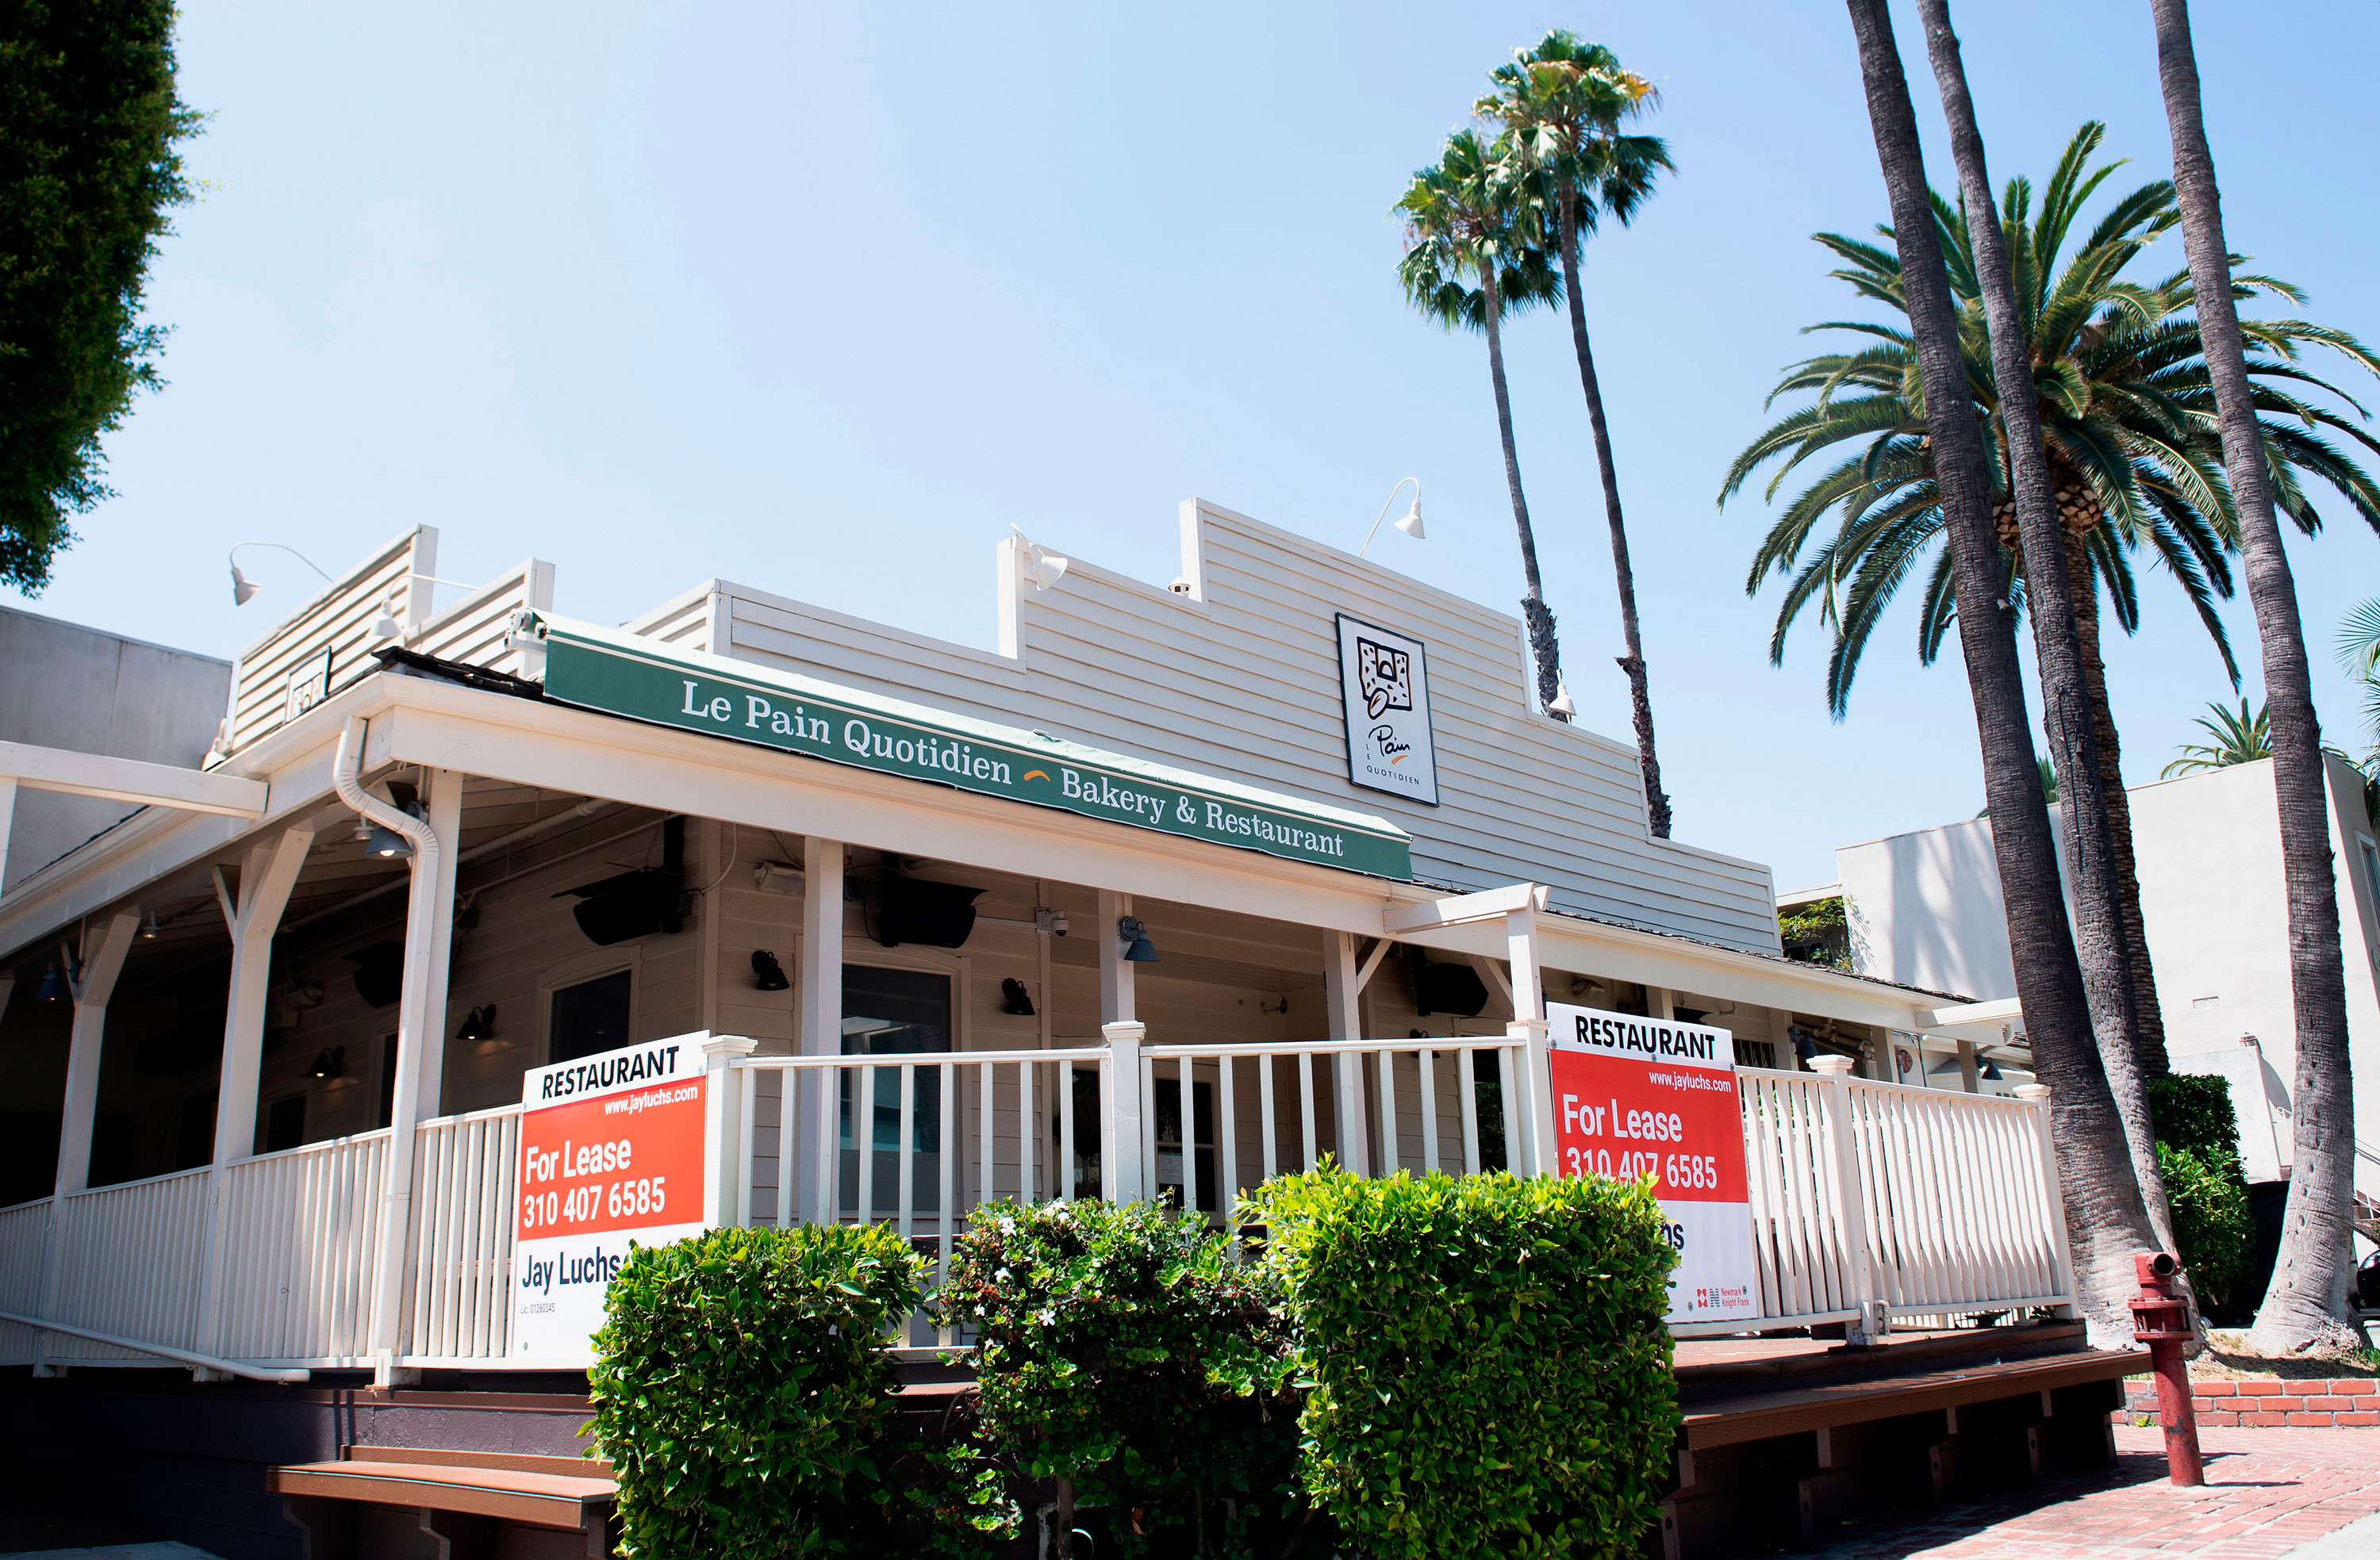 For Lease signs are seen on the balcony of a now closed restaurant in West Hollywood, California on August 3.